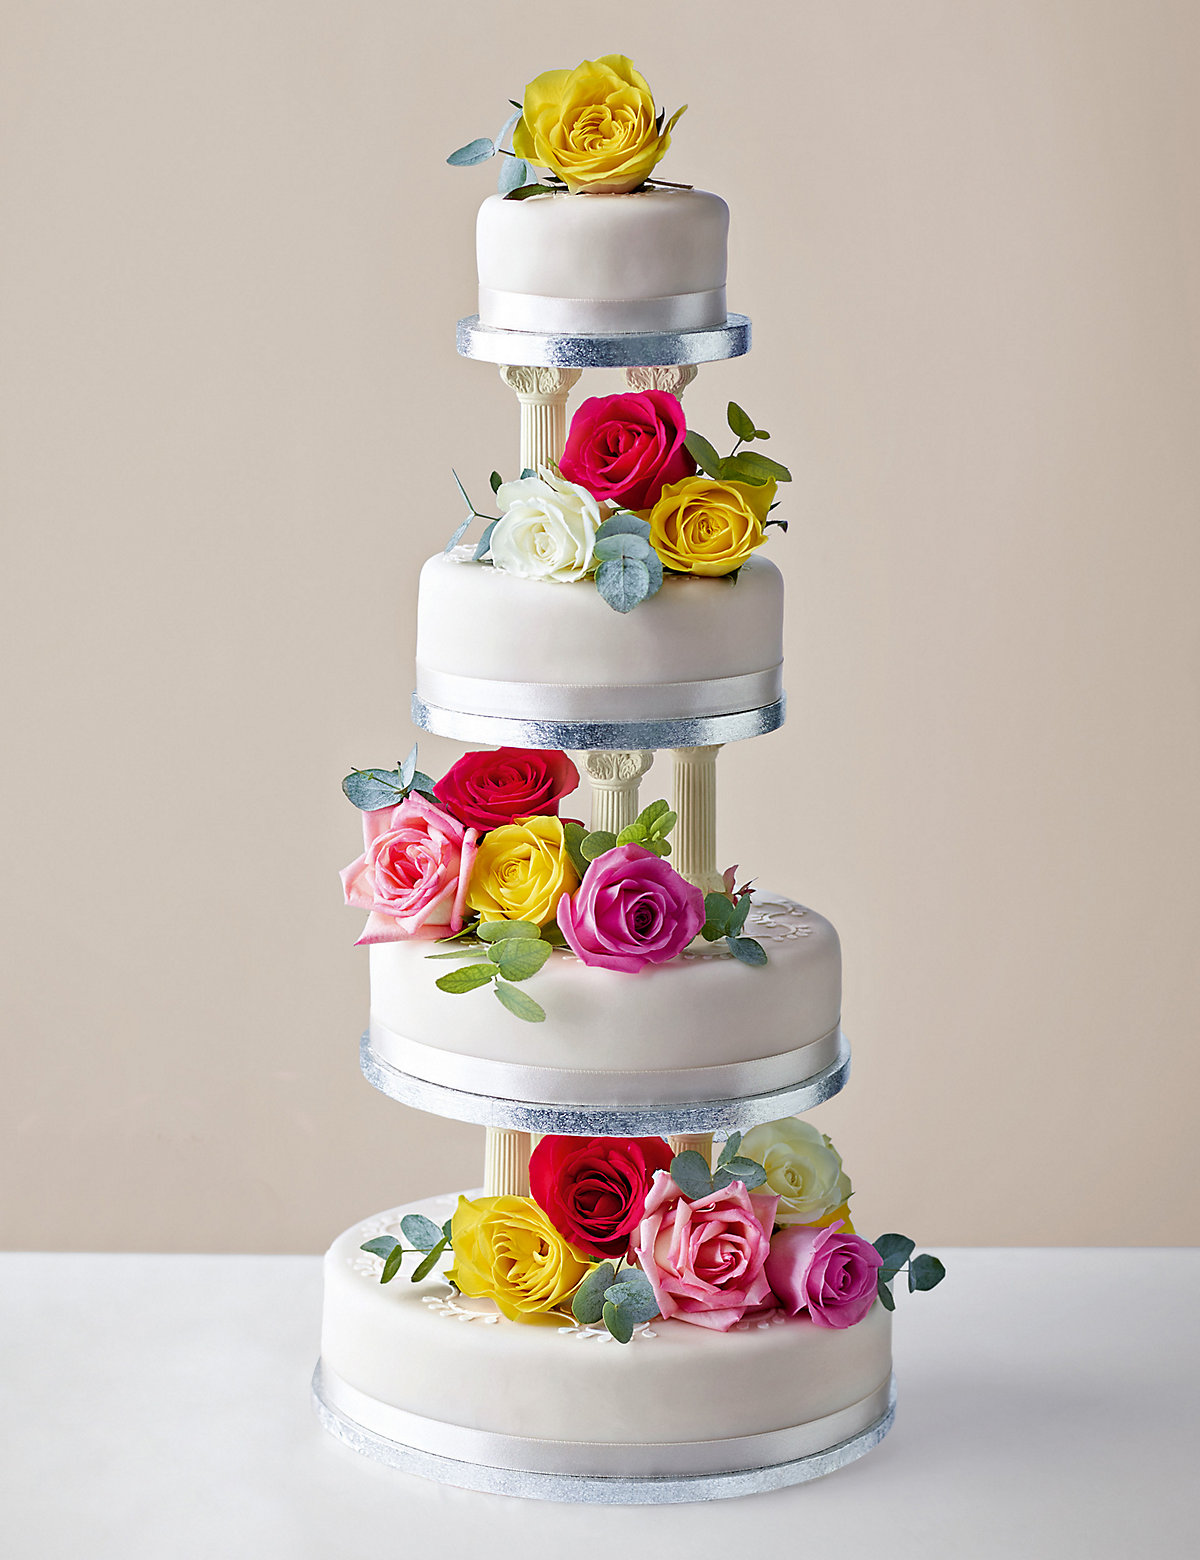 traditional wedding cake create your own fruit sponge or chocola